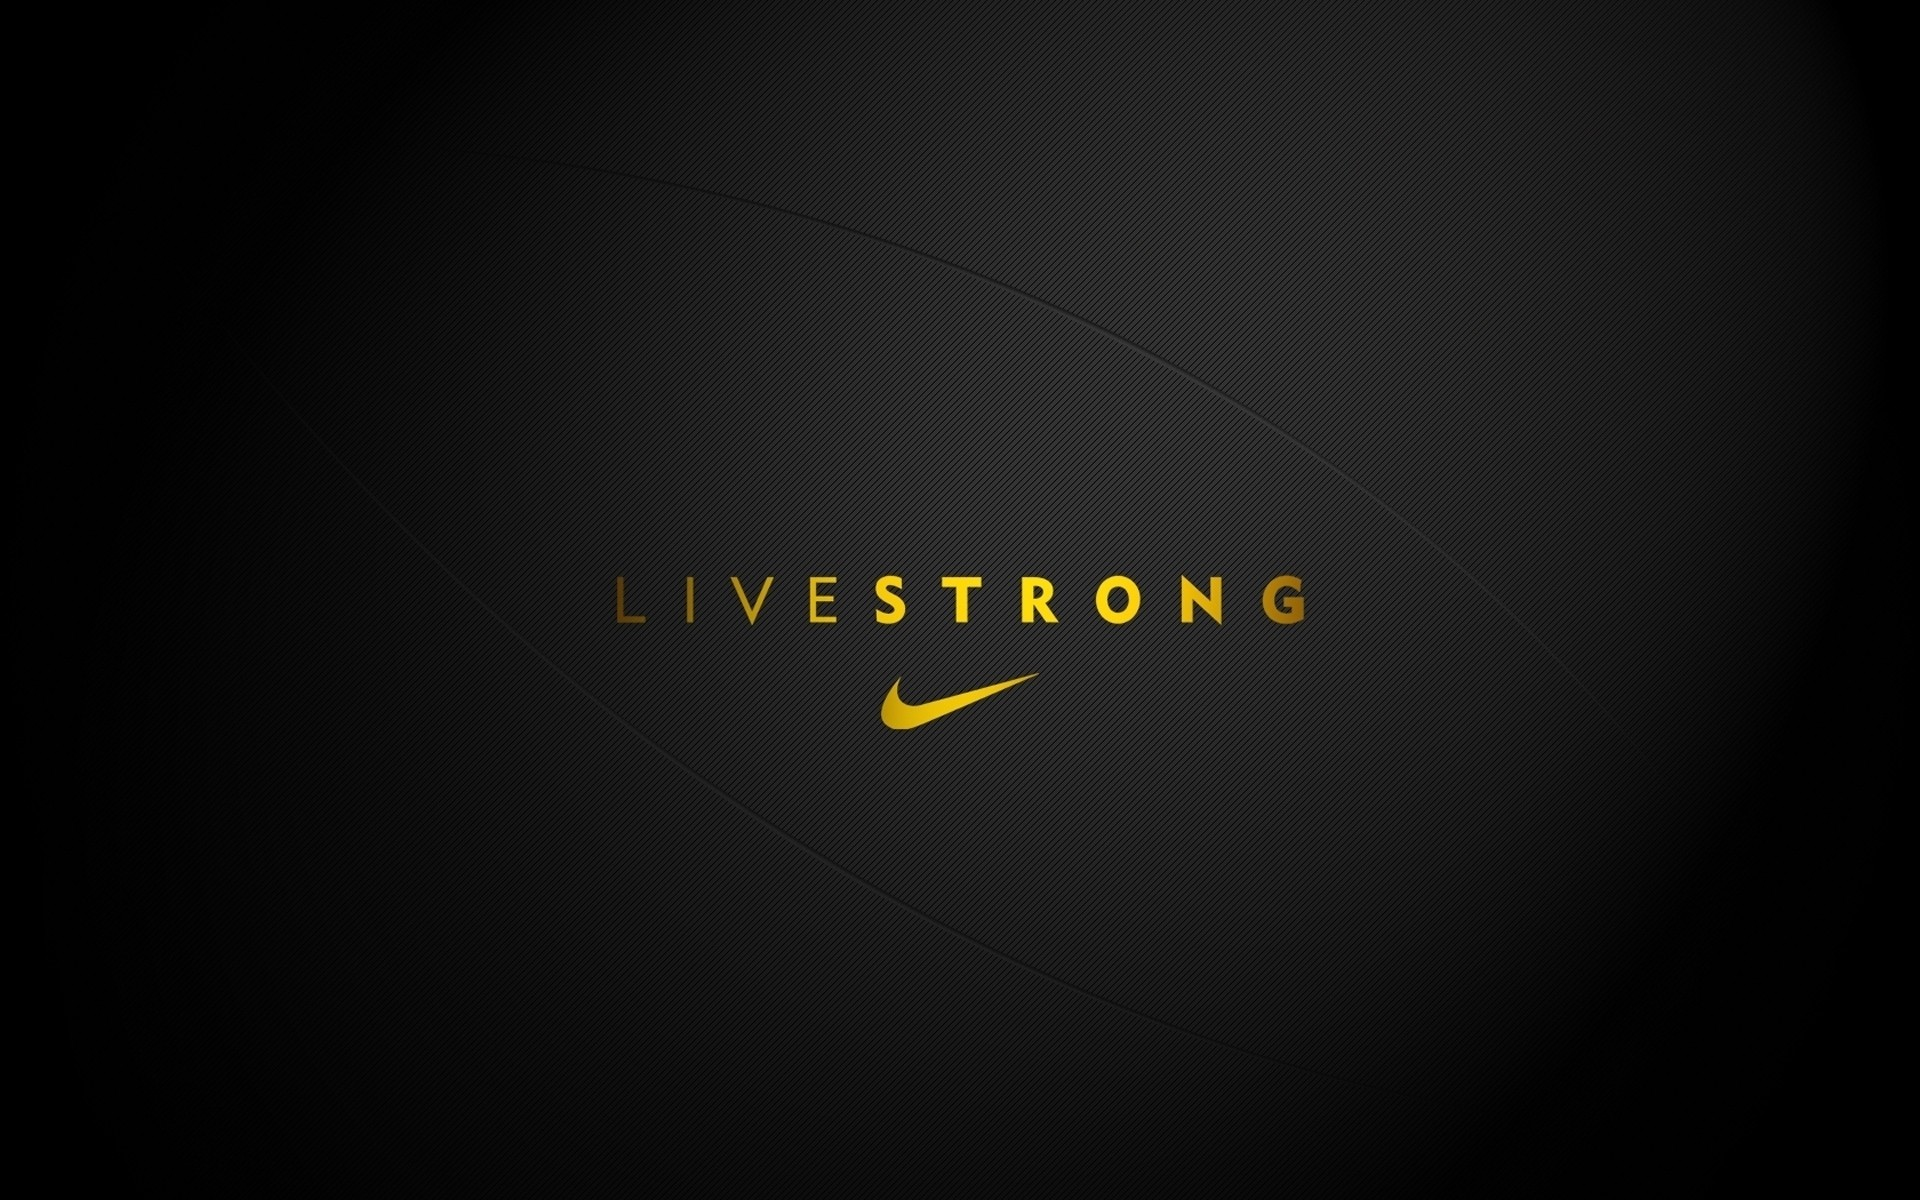 Live Strong Nike Phone Wallpapers